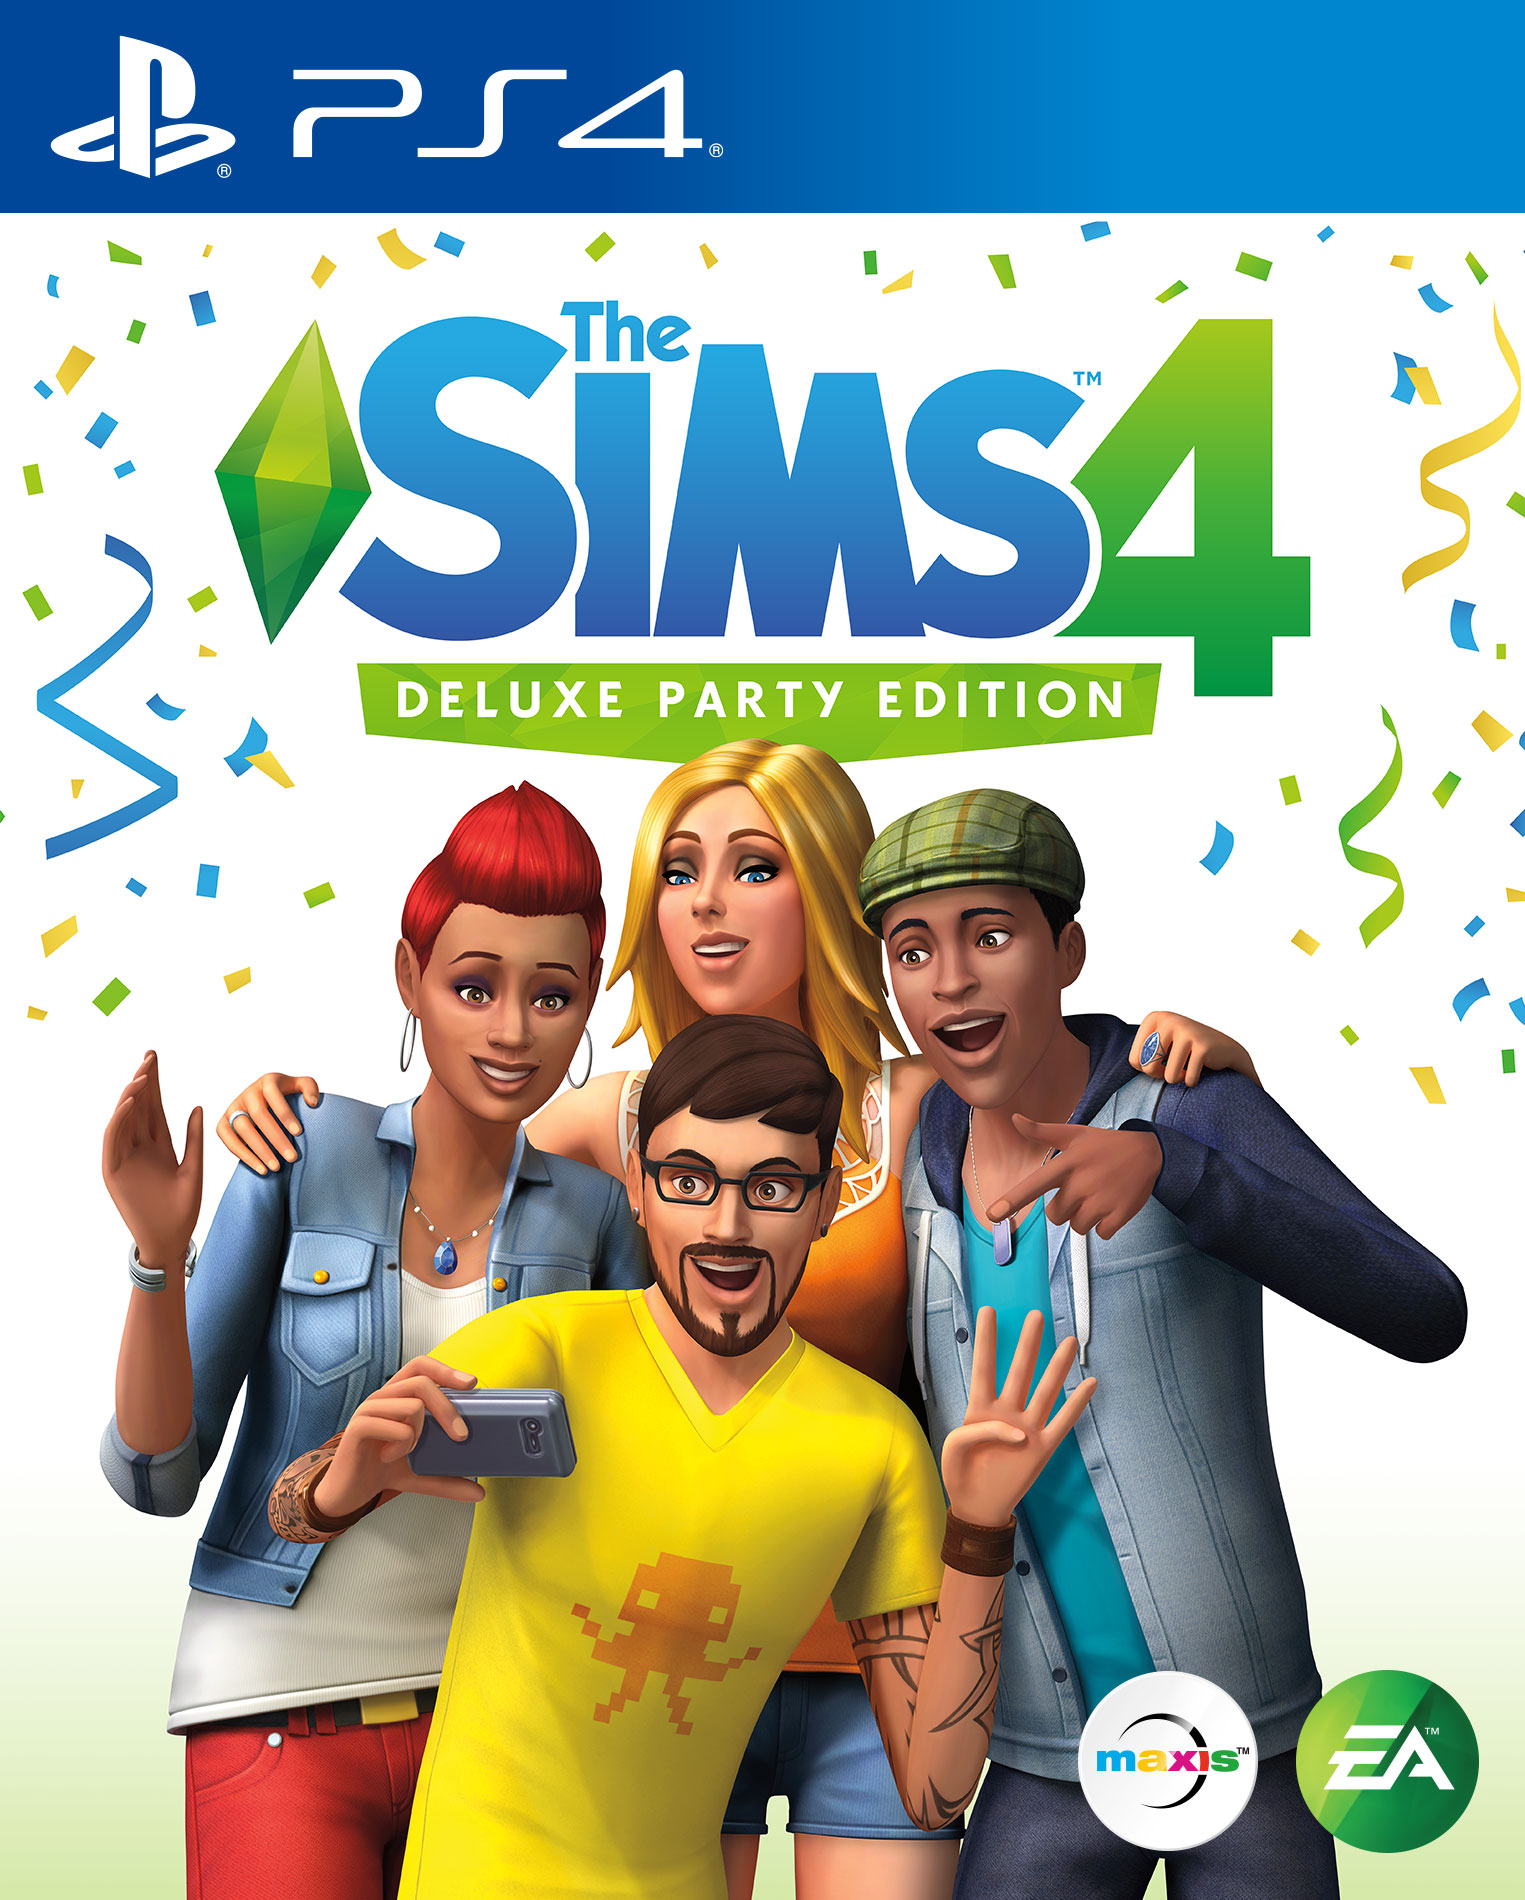 The Sims 4 Deluxe Party Edition Playstation 4